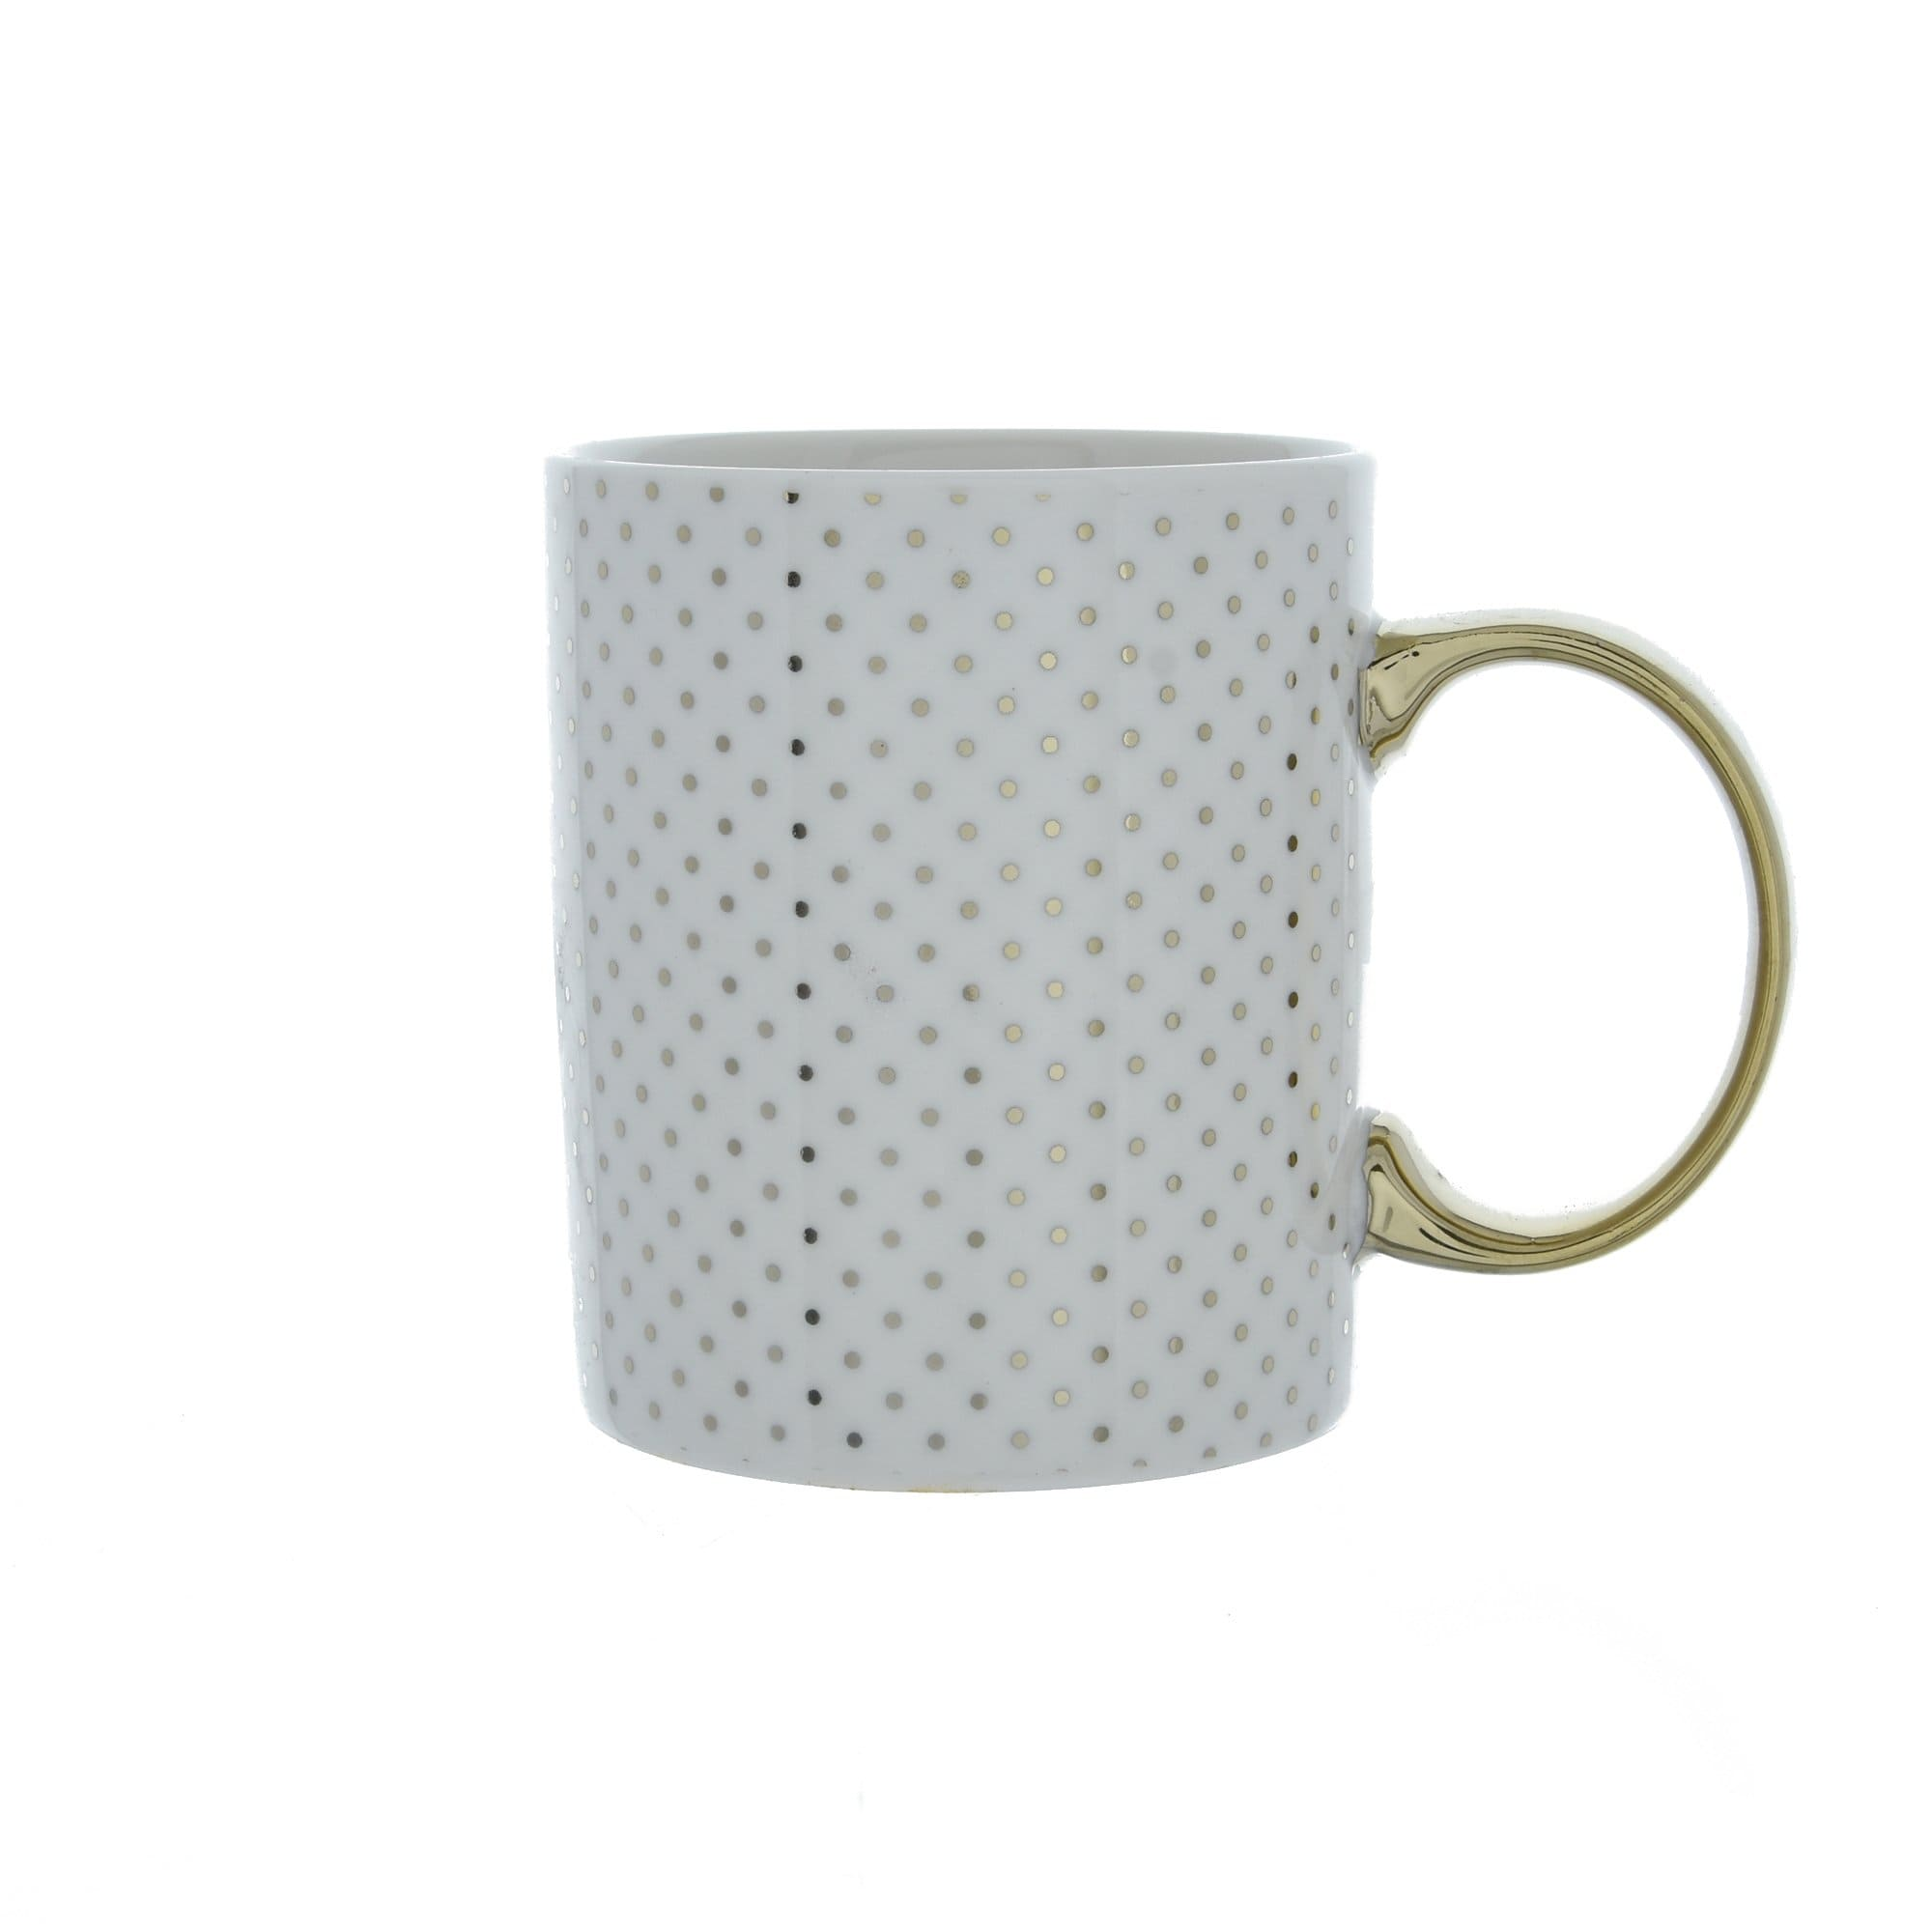 Candlelight Home Mugs Polka Dot Mug Gold 8cm 6PK